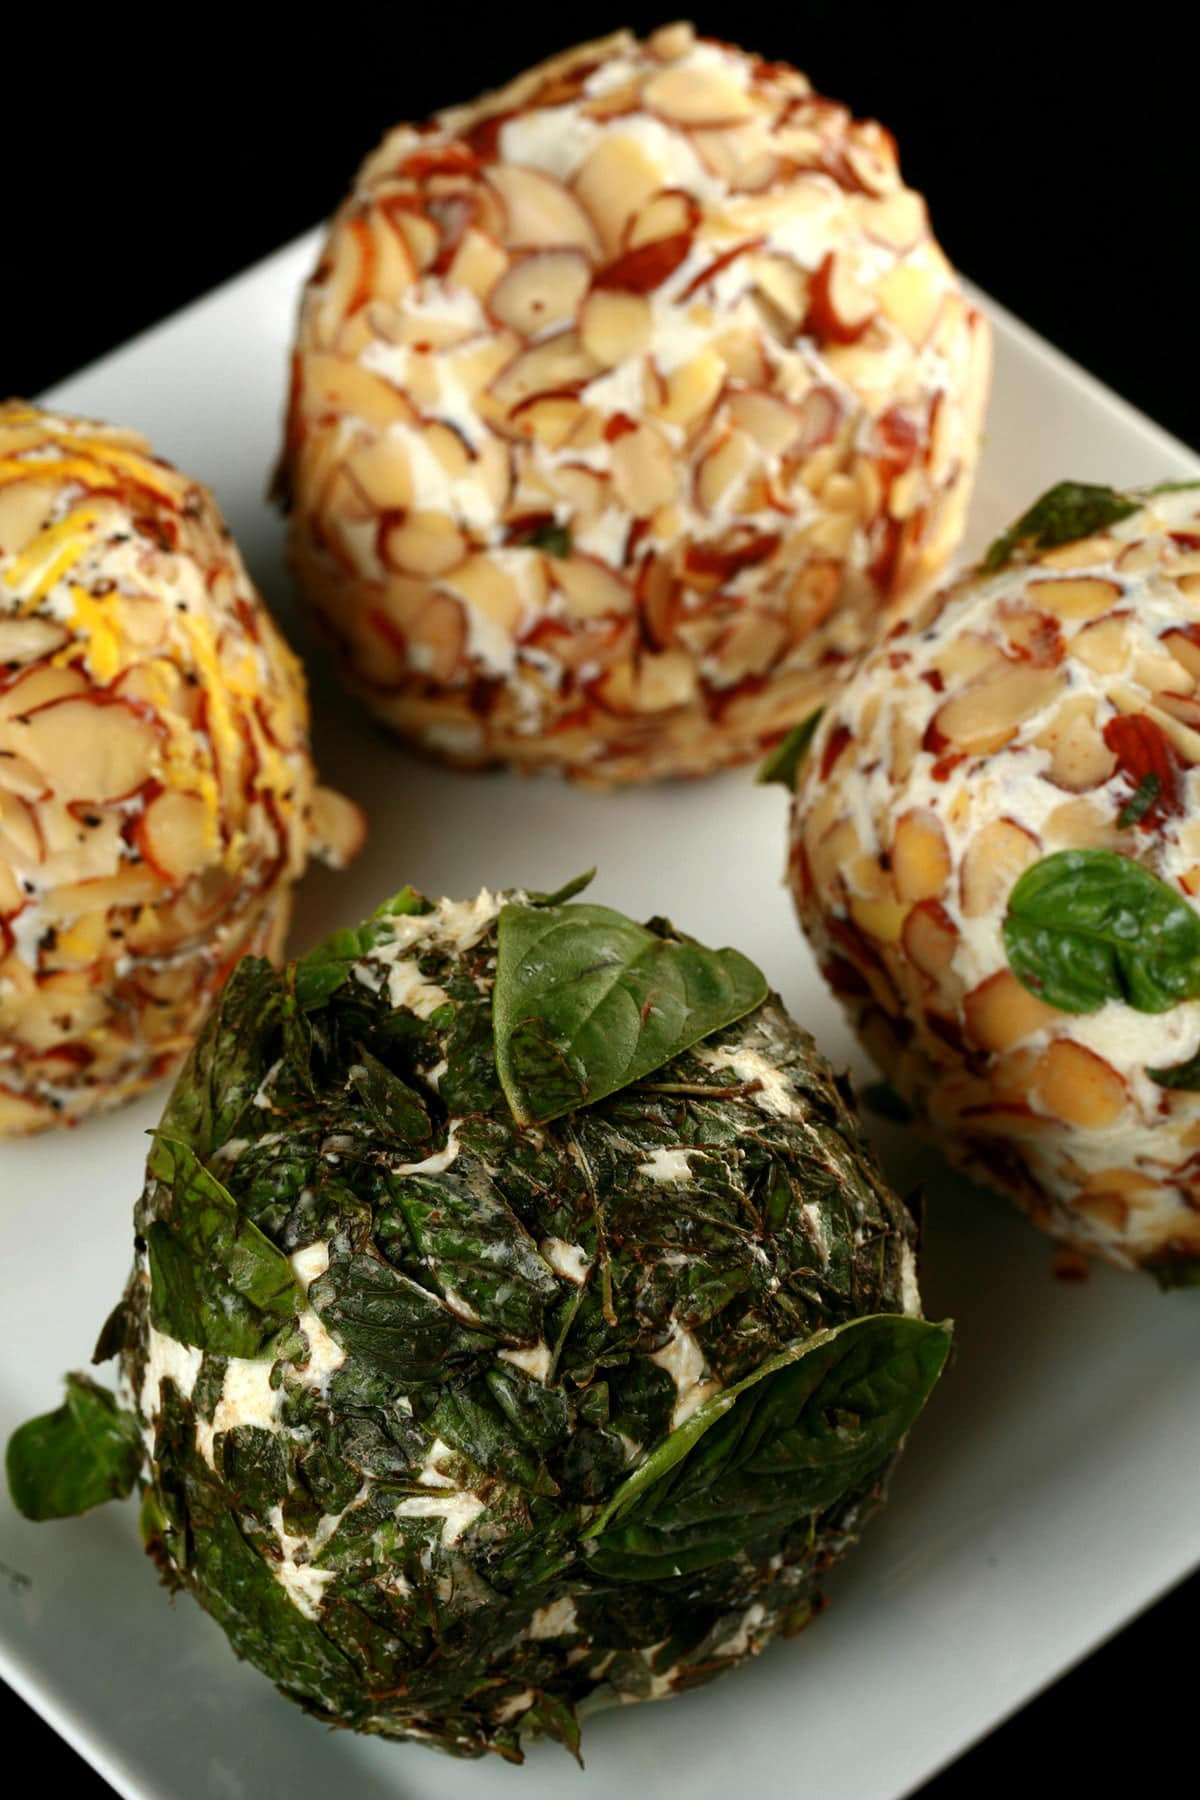 4 cheese balls with a variety of coatings - nuts, seeds, and basil - are arranged on a plate.